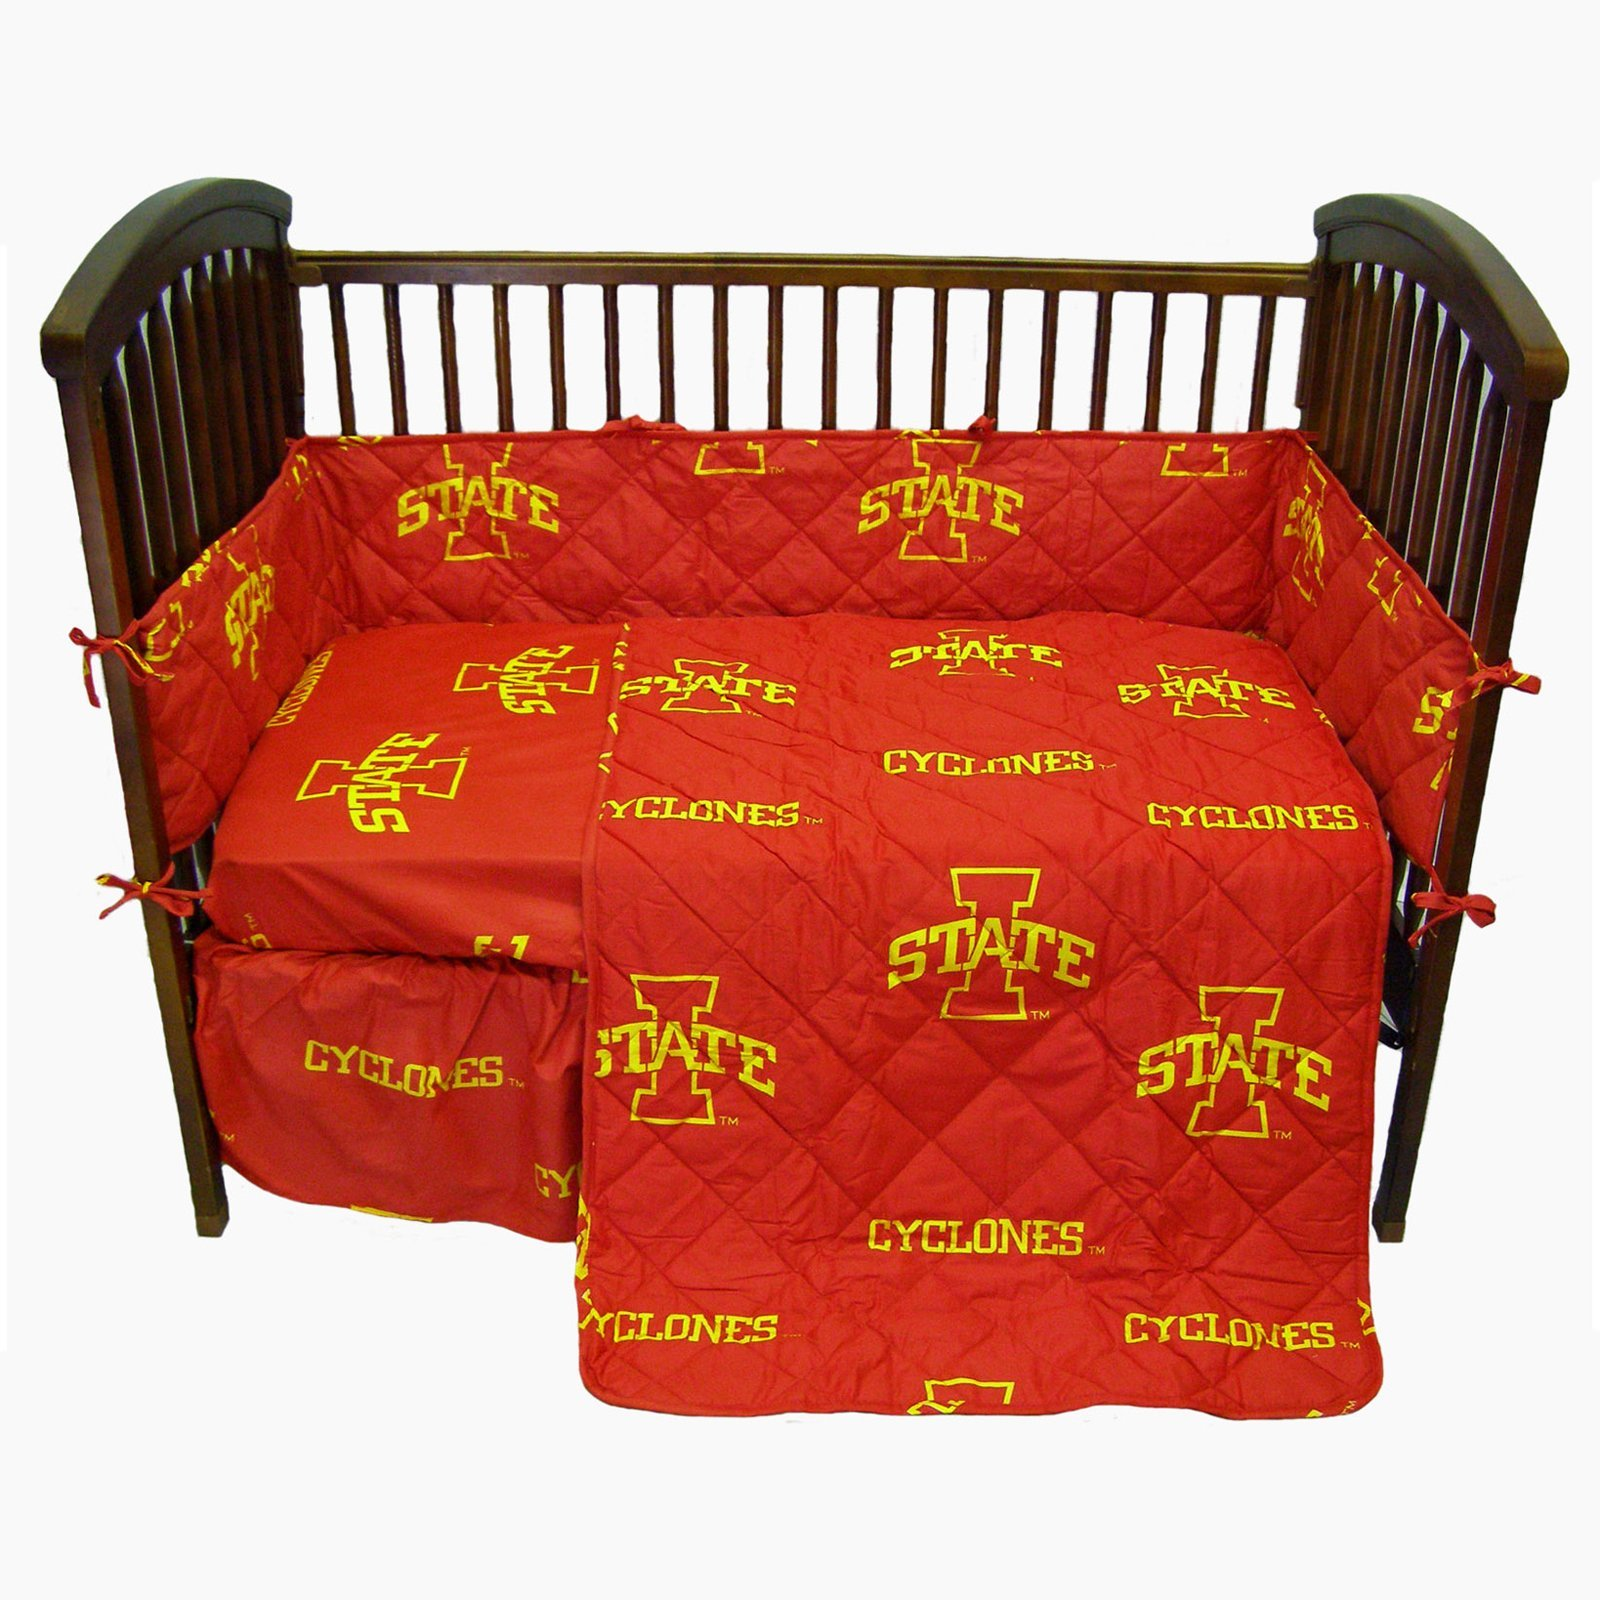 College Covers ISUCSFSPR Pair of Fitted Crib Sheets, Team Color, 28'' x 52'' x 6'' by College Covers (Image #1)